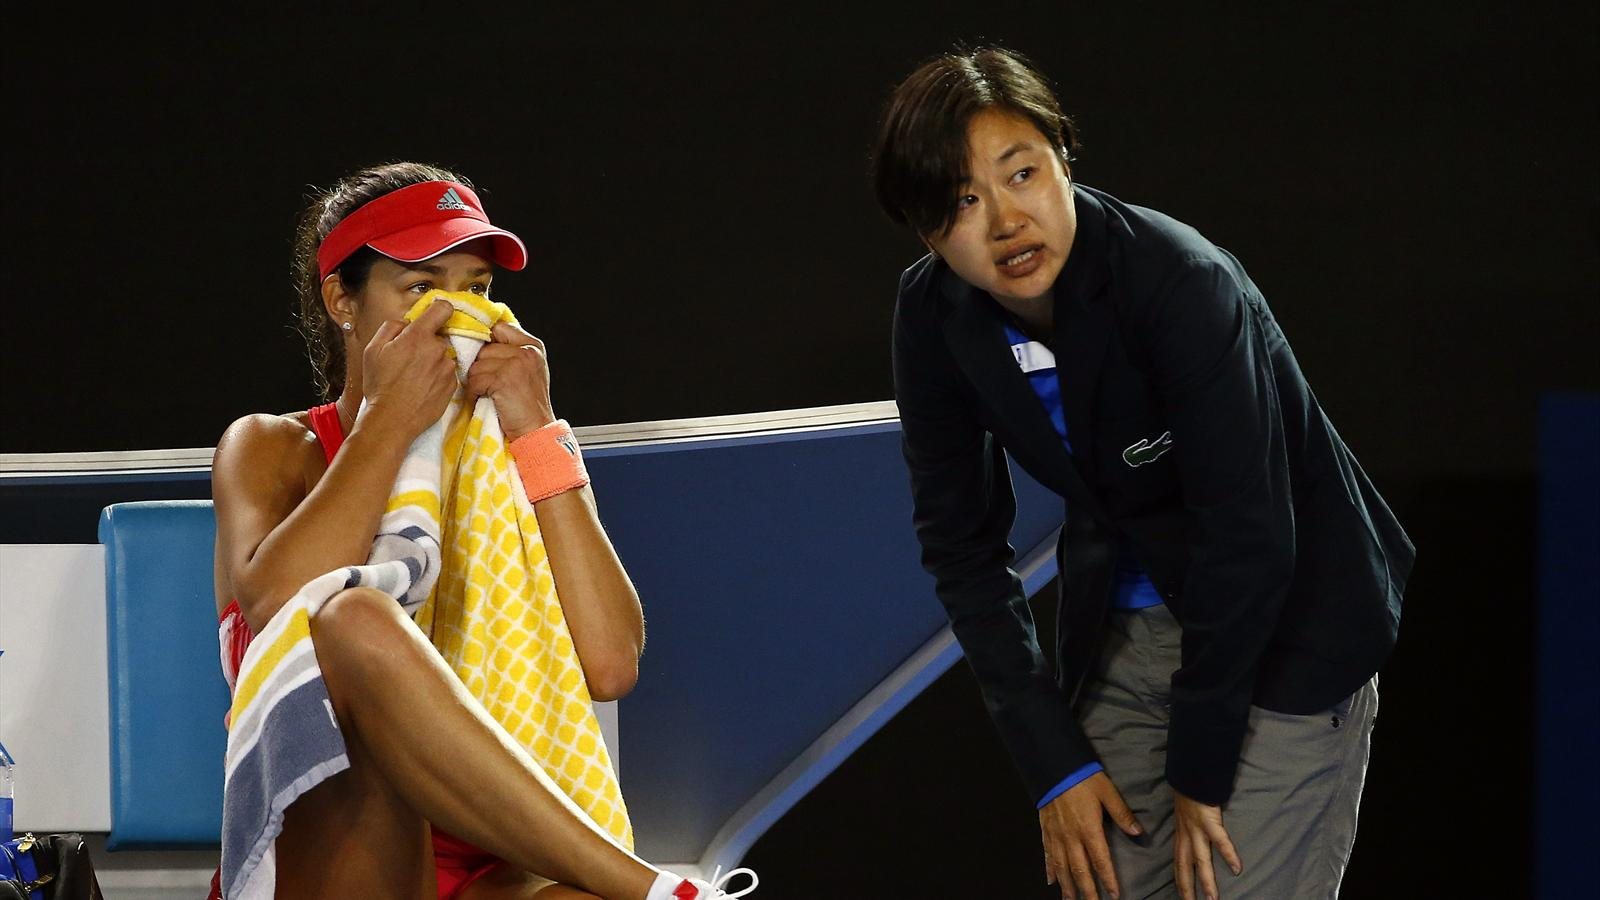 Serbia's Ana Ivanovic reacts as she talks to an official after a fall during her second round match against Latvia's Anastasija Sevastova